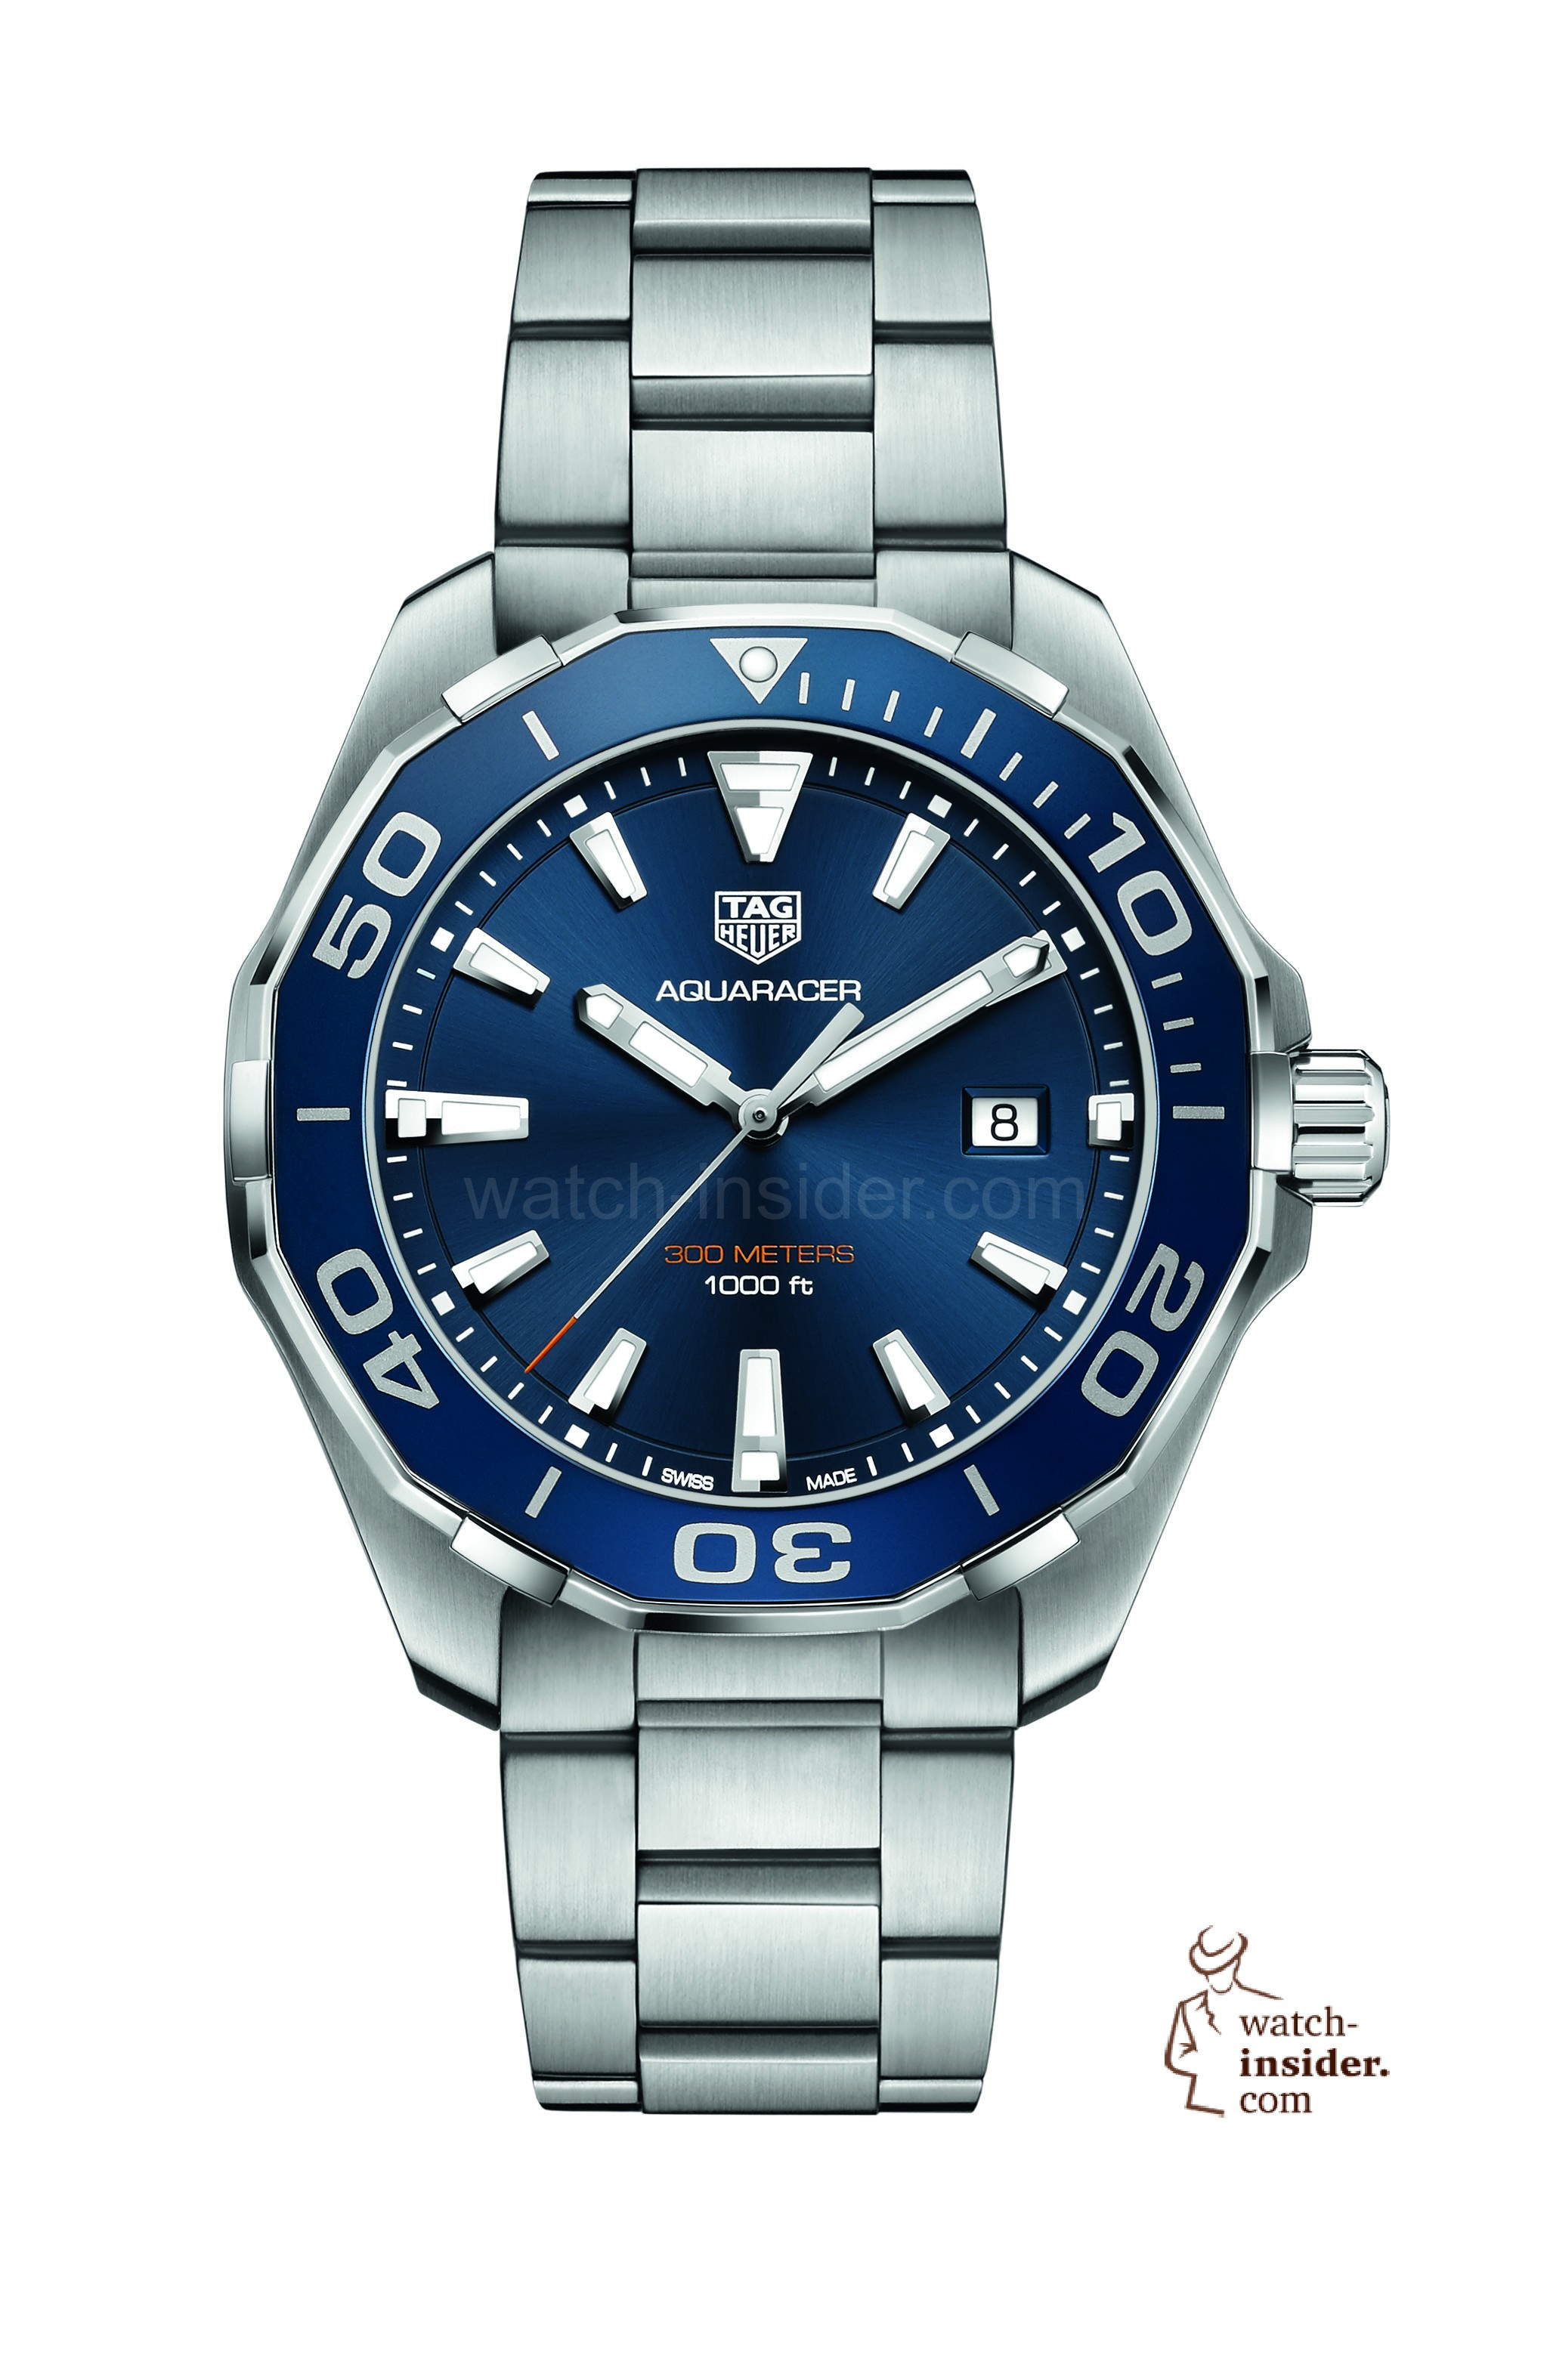 Tagheuer baselworld four new tag heuer watches watch for Tag heuer aquaracer 300m